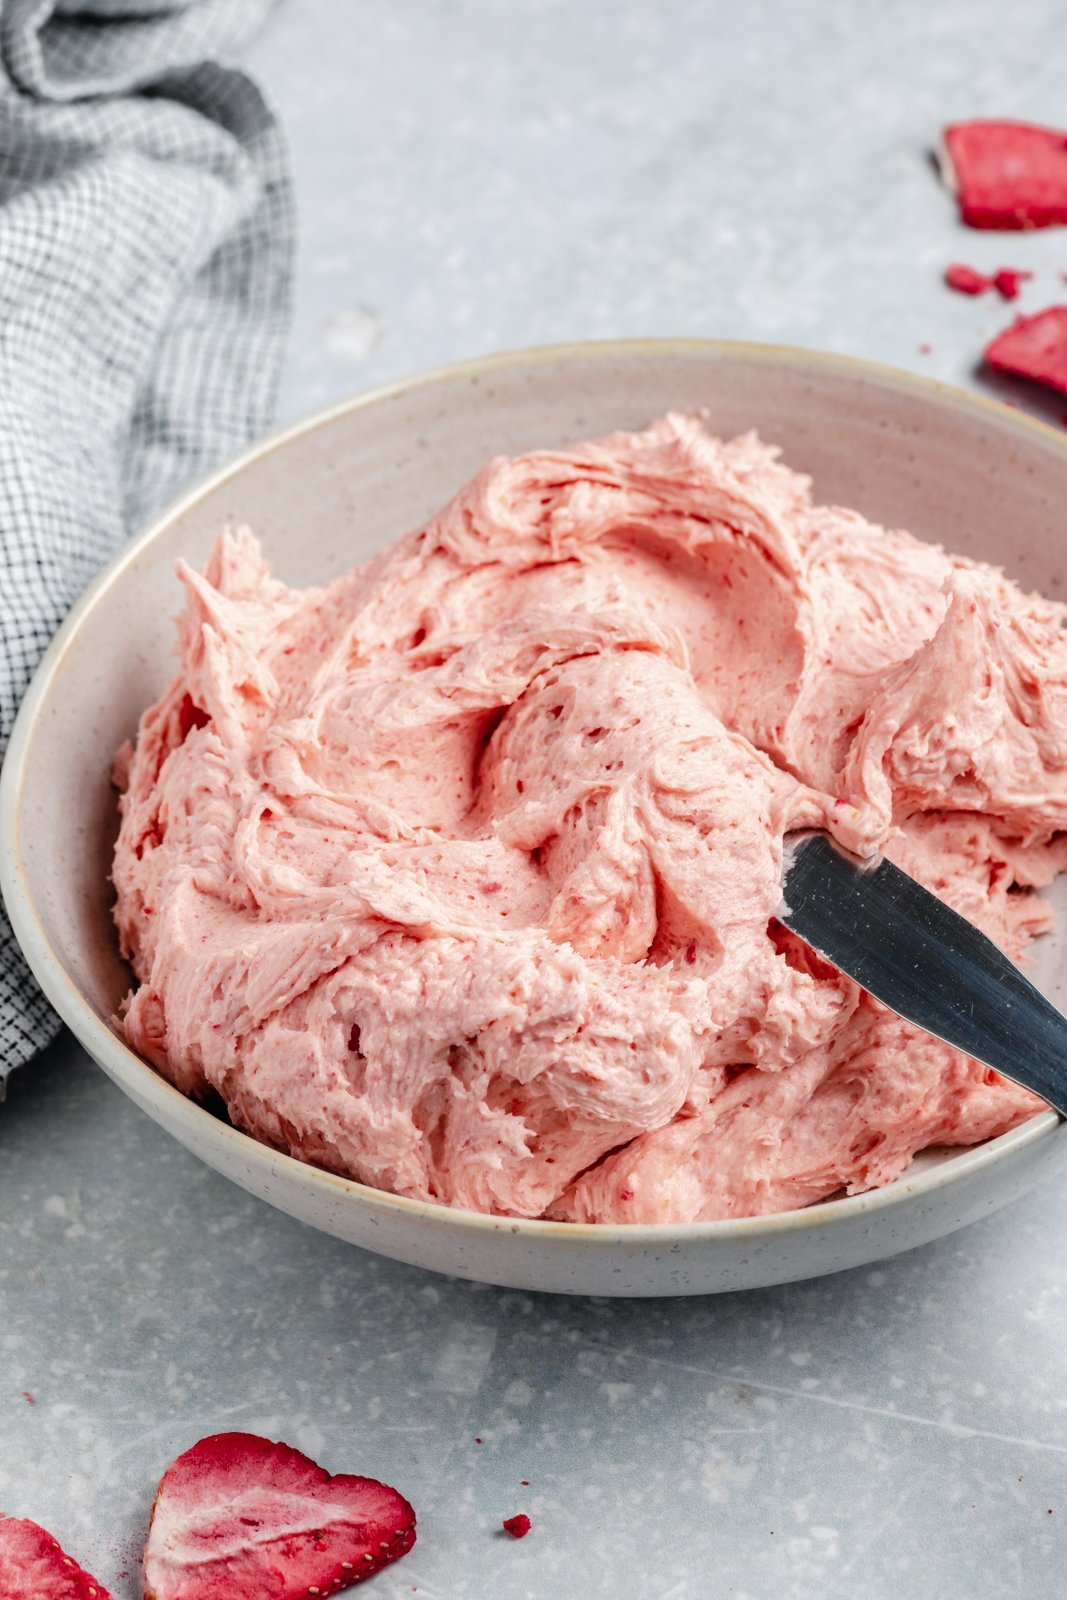 strawberry buttercream in a bowl